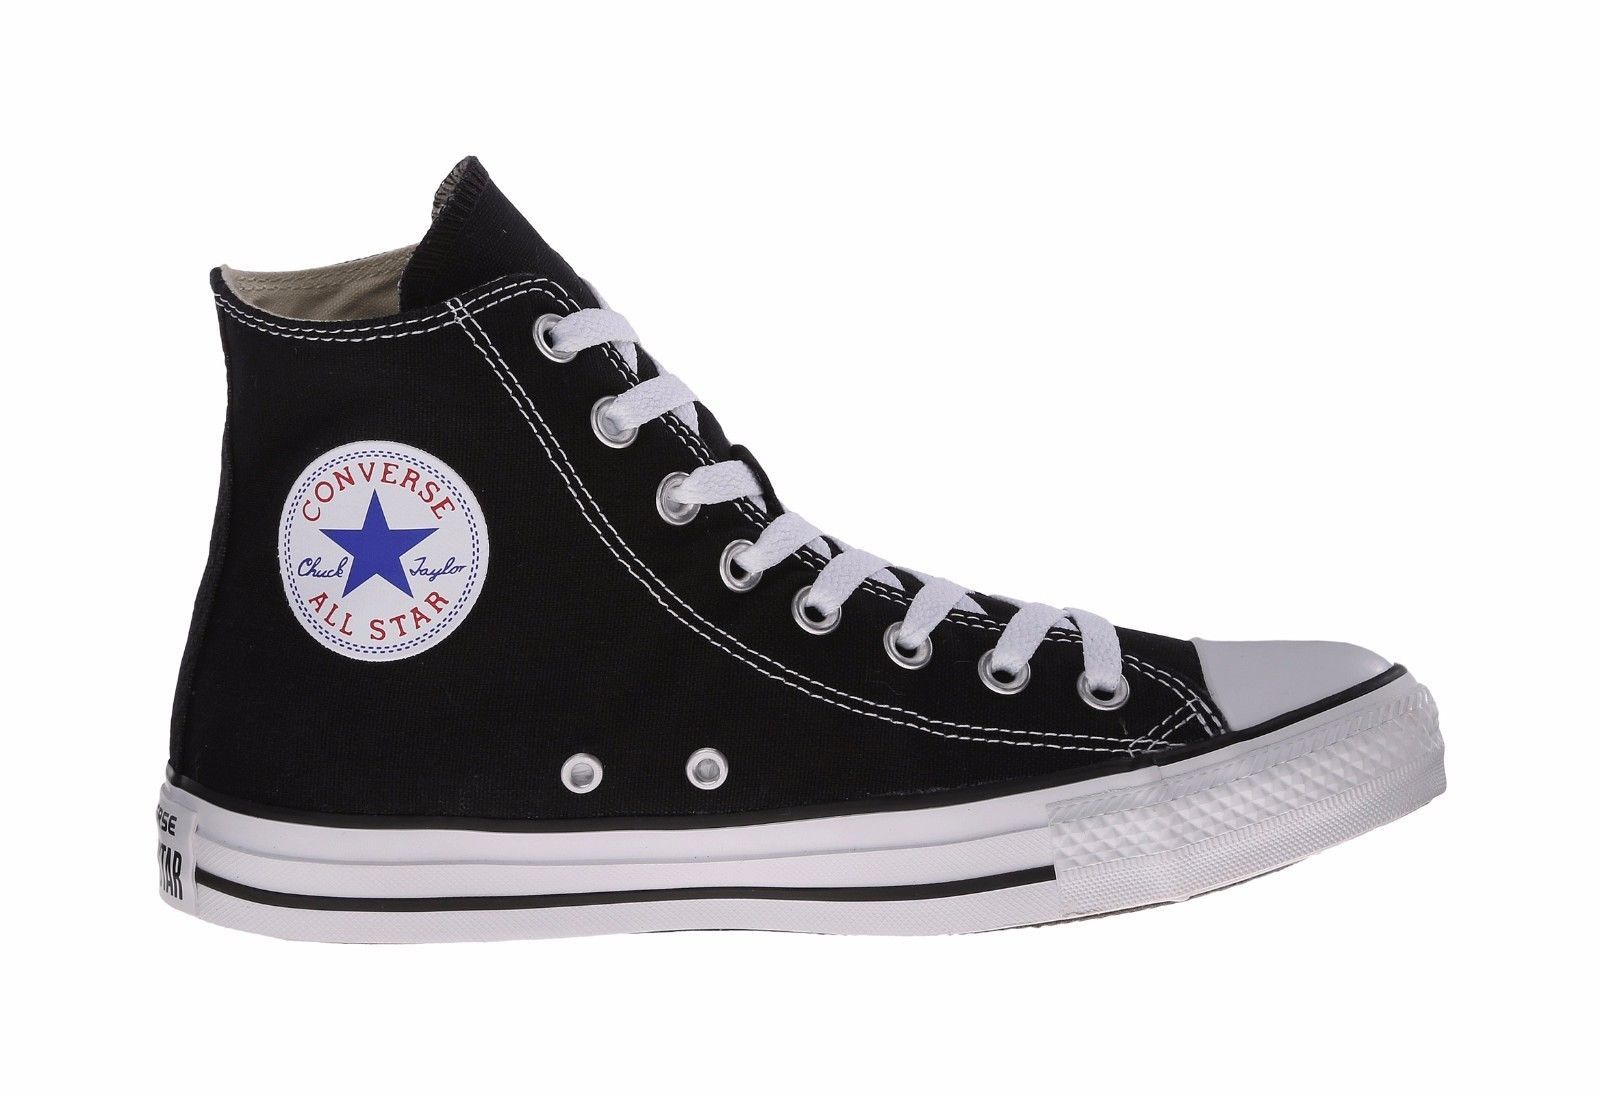 77f1d92c2e4c Converse Chuck Taylor All Star Hi Top Black White Shoes Women Sneakers M9160